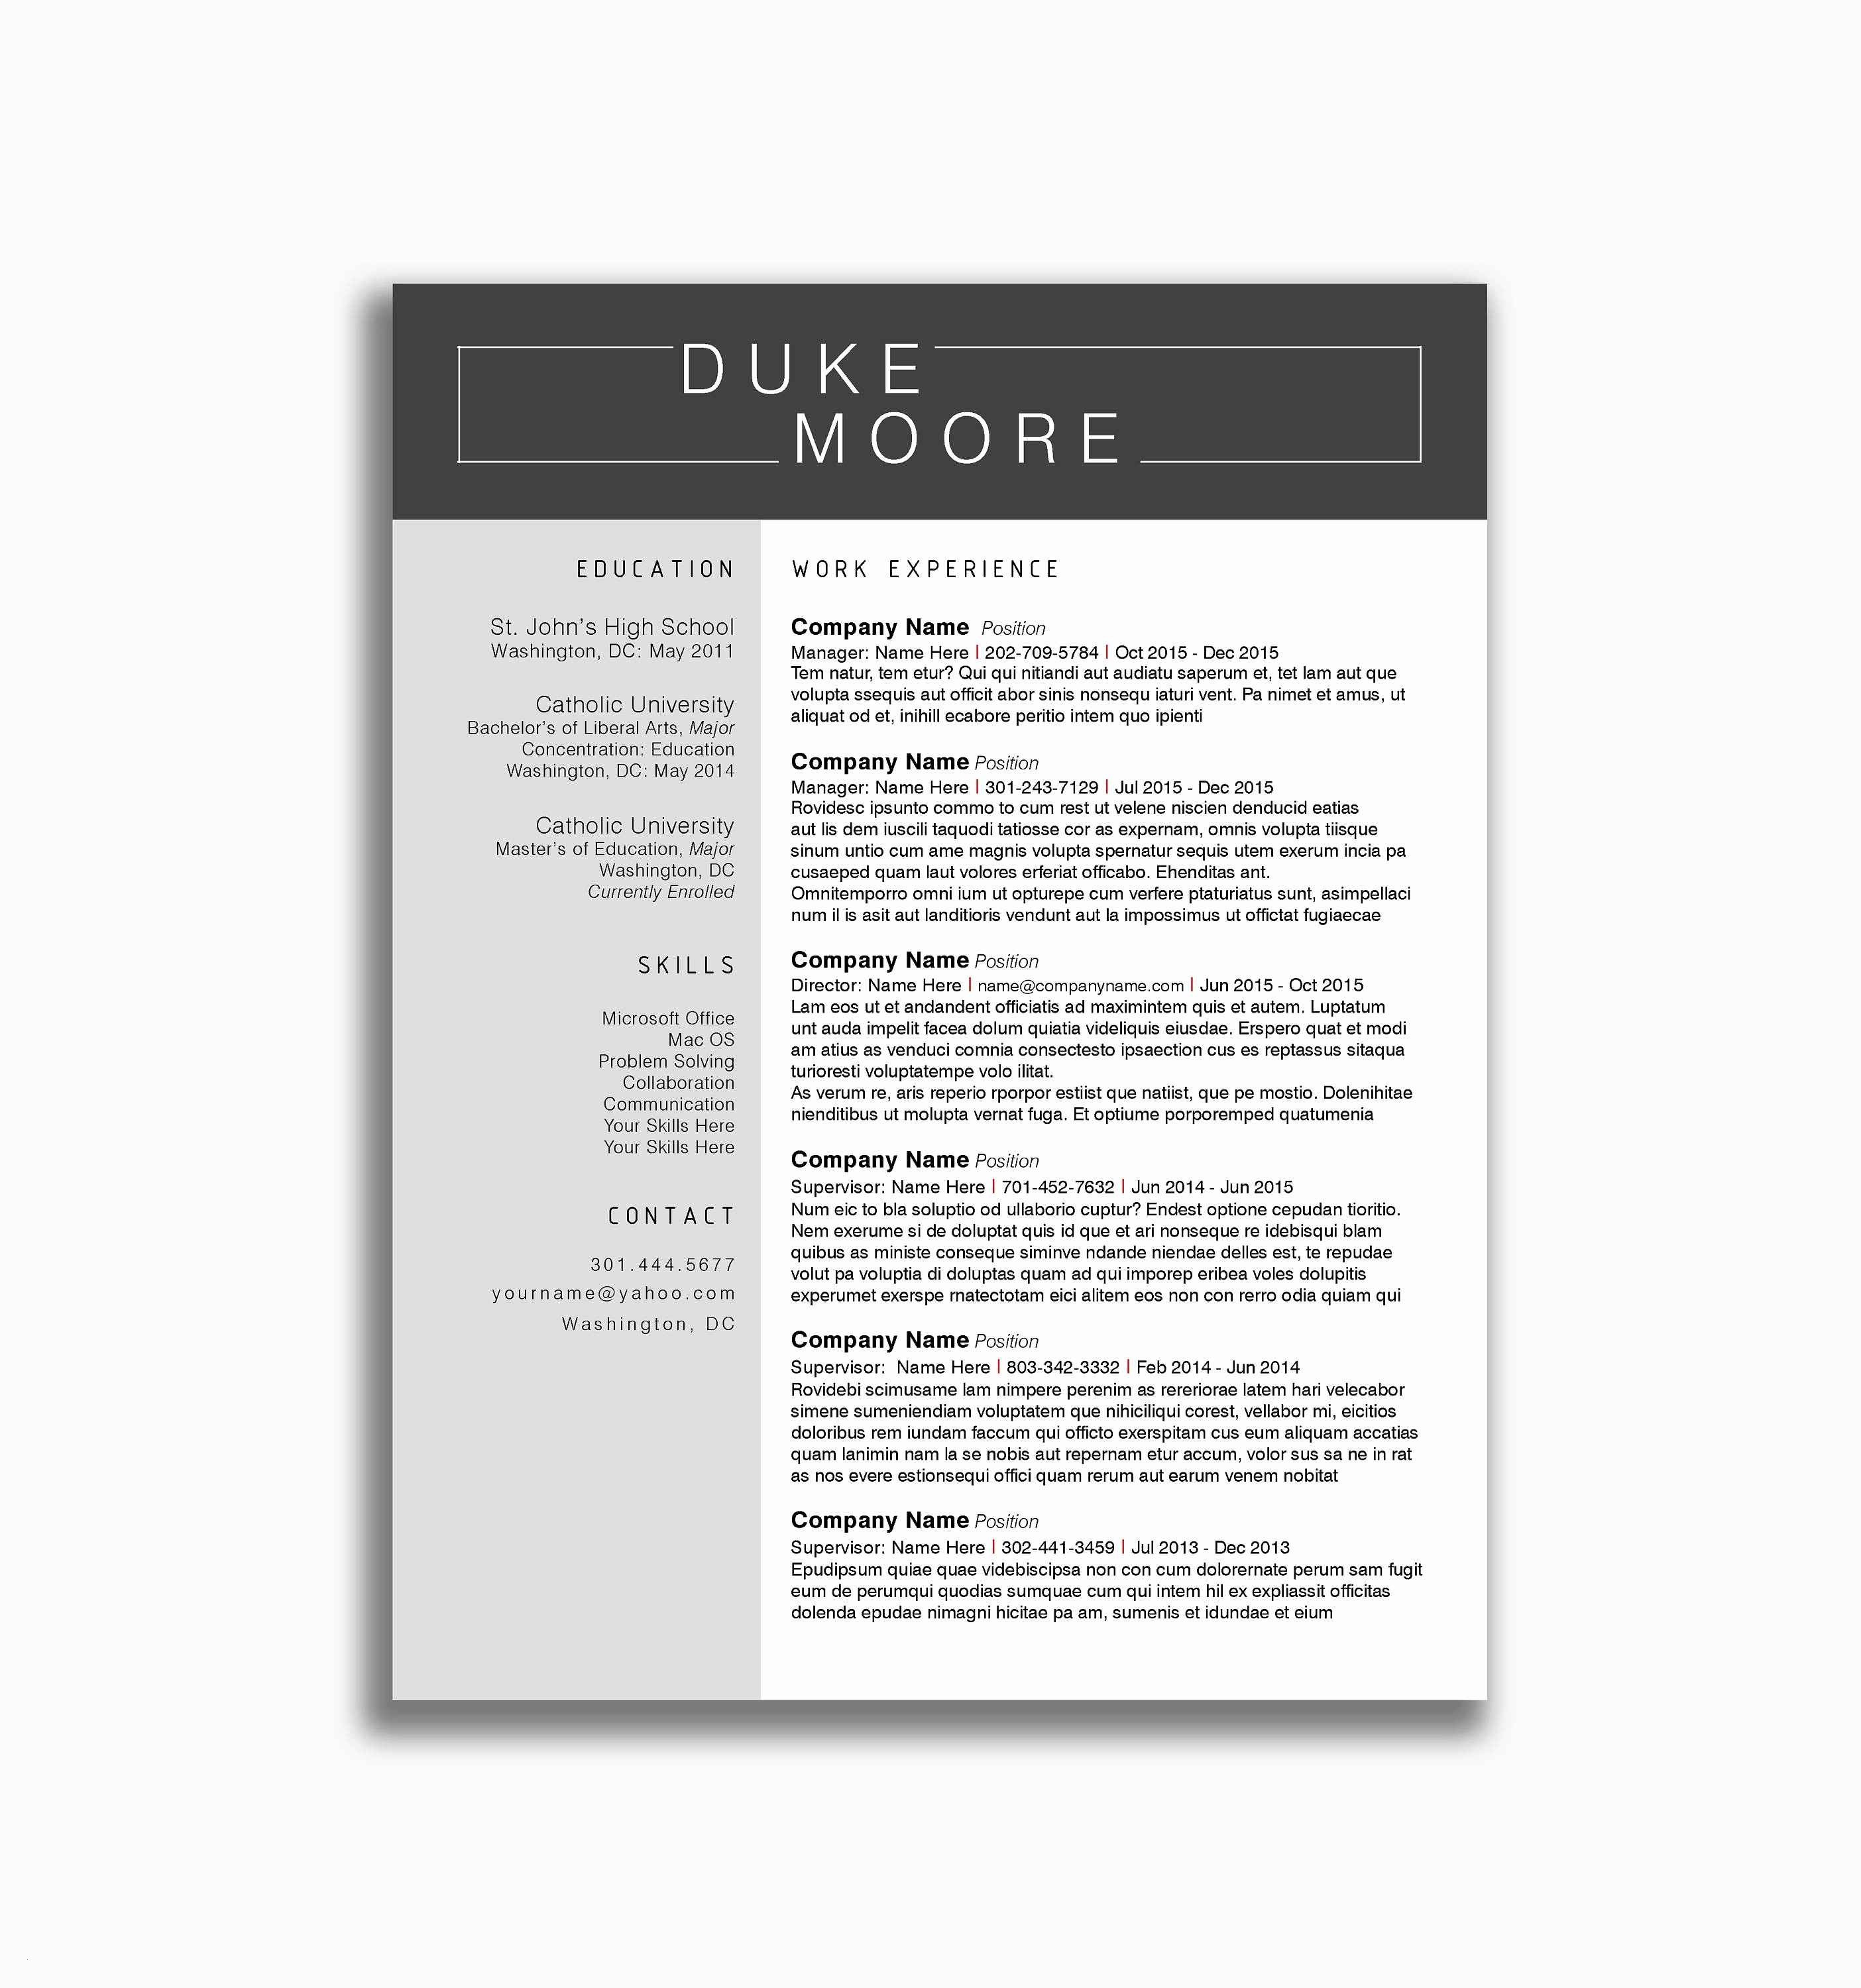 Cscareerquestions Resume Template - Simple Cv format for Job New assistant Professor Resume format